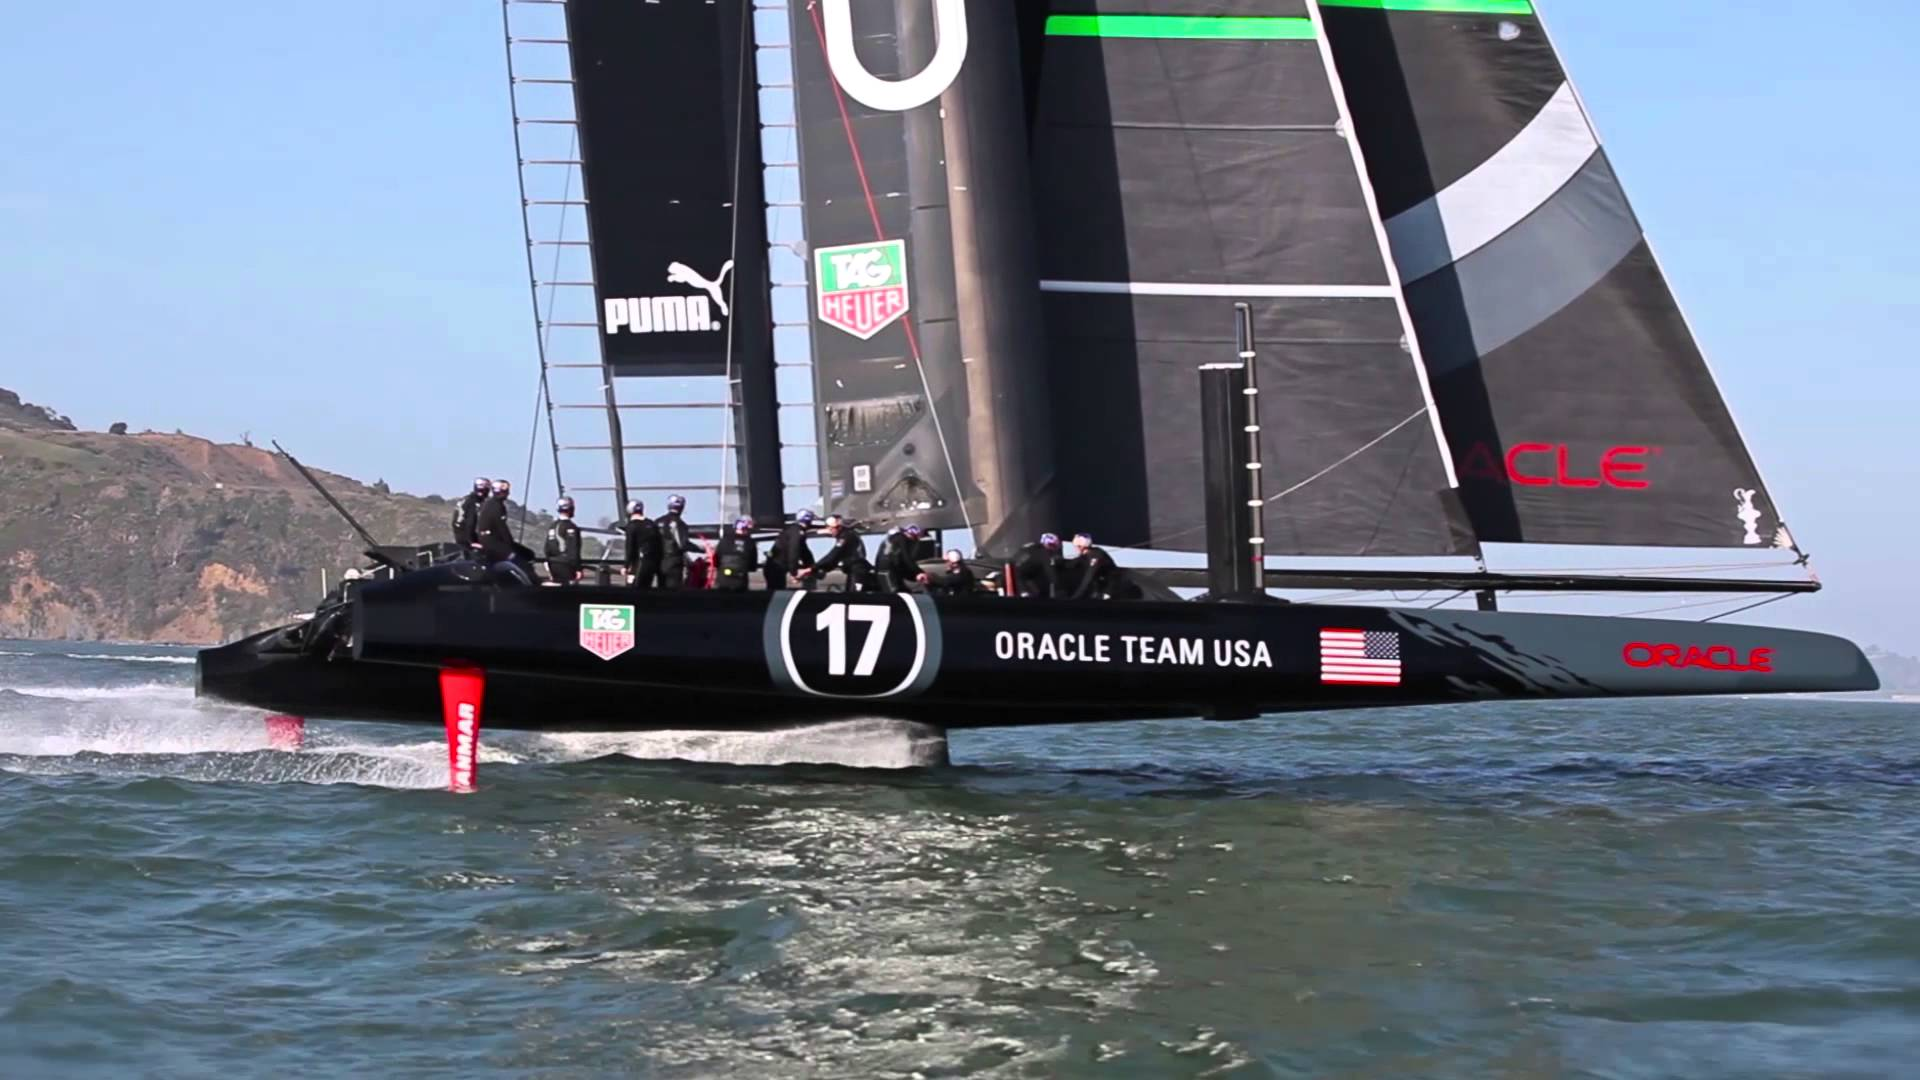 Oracle-AC72.jpg